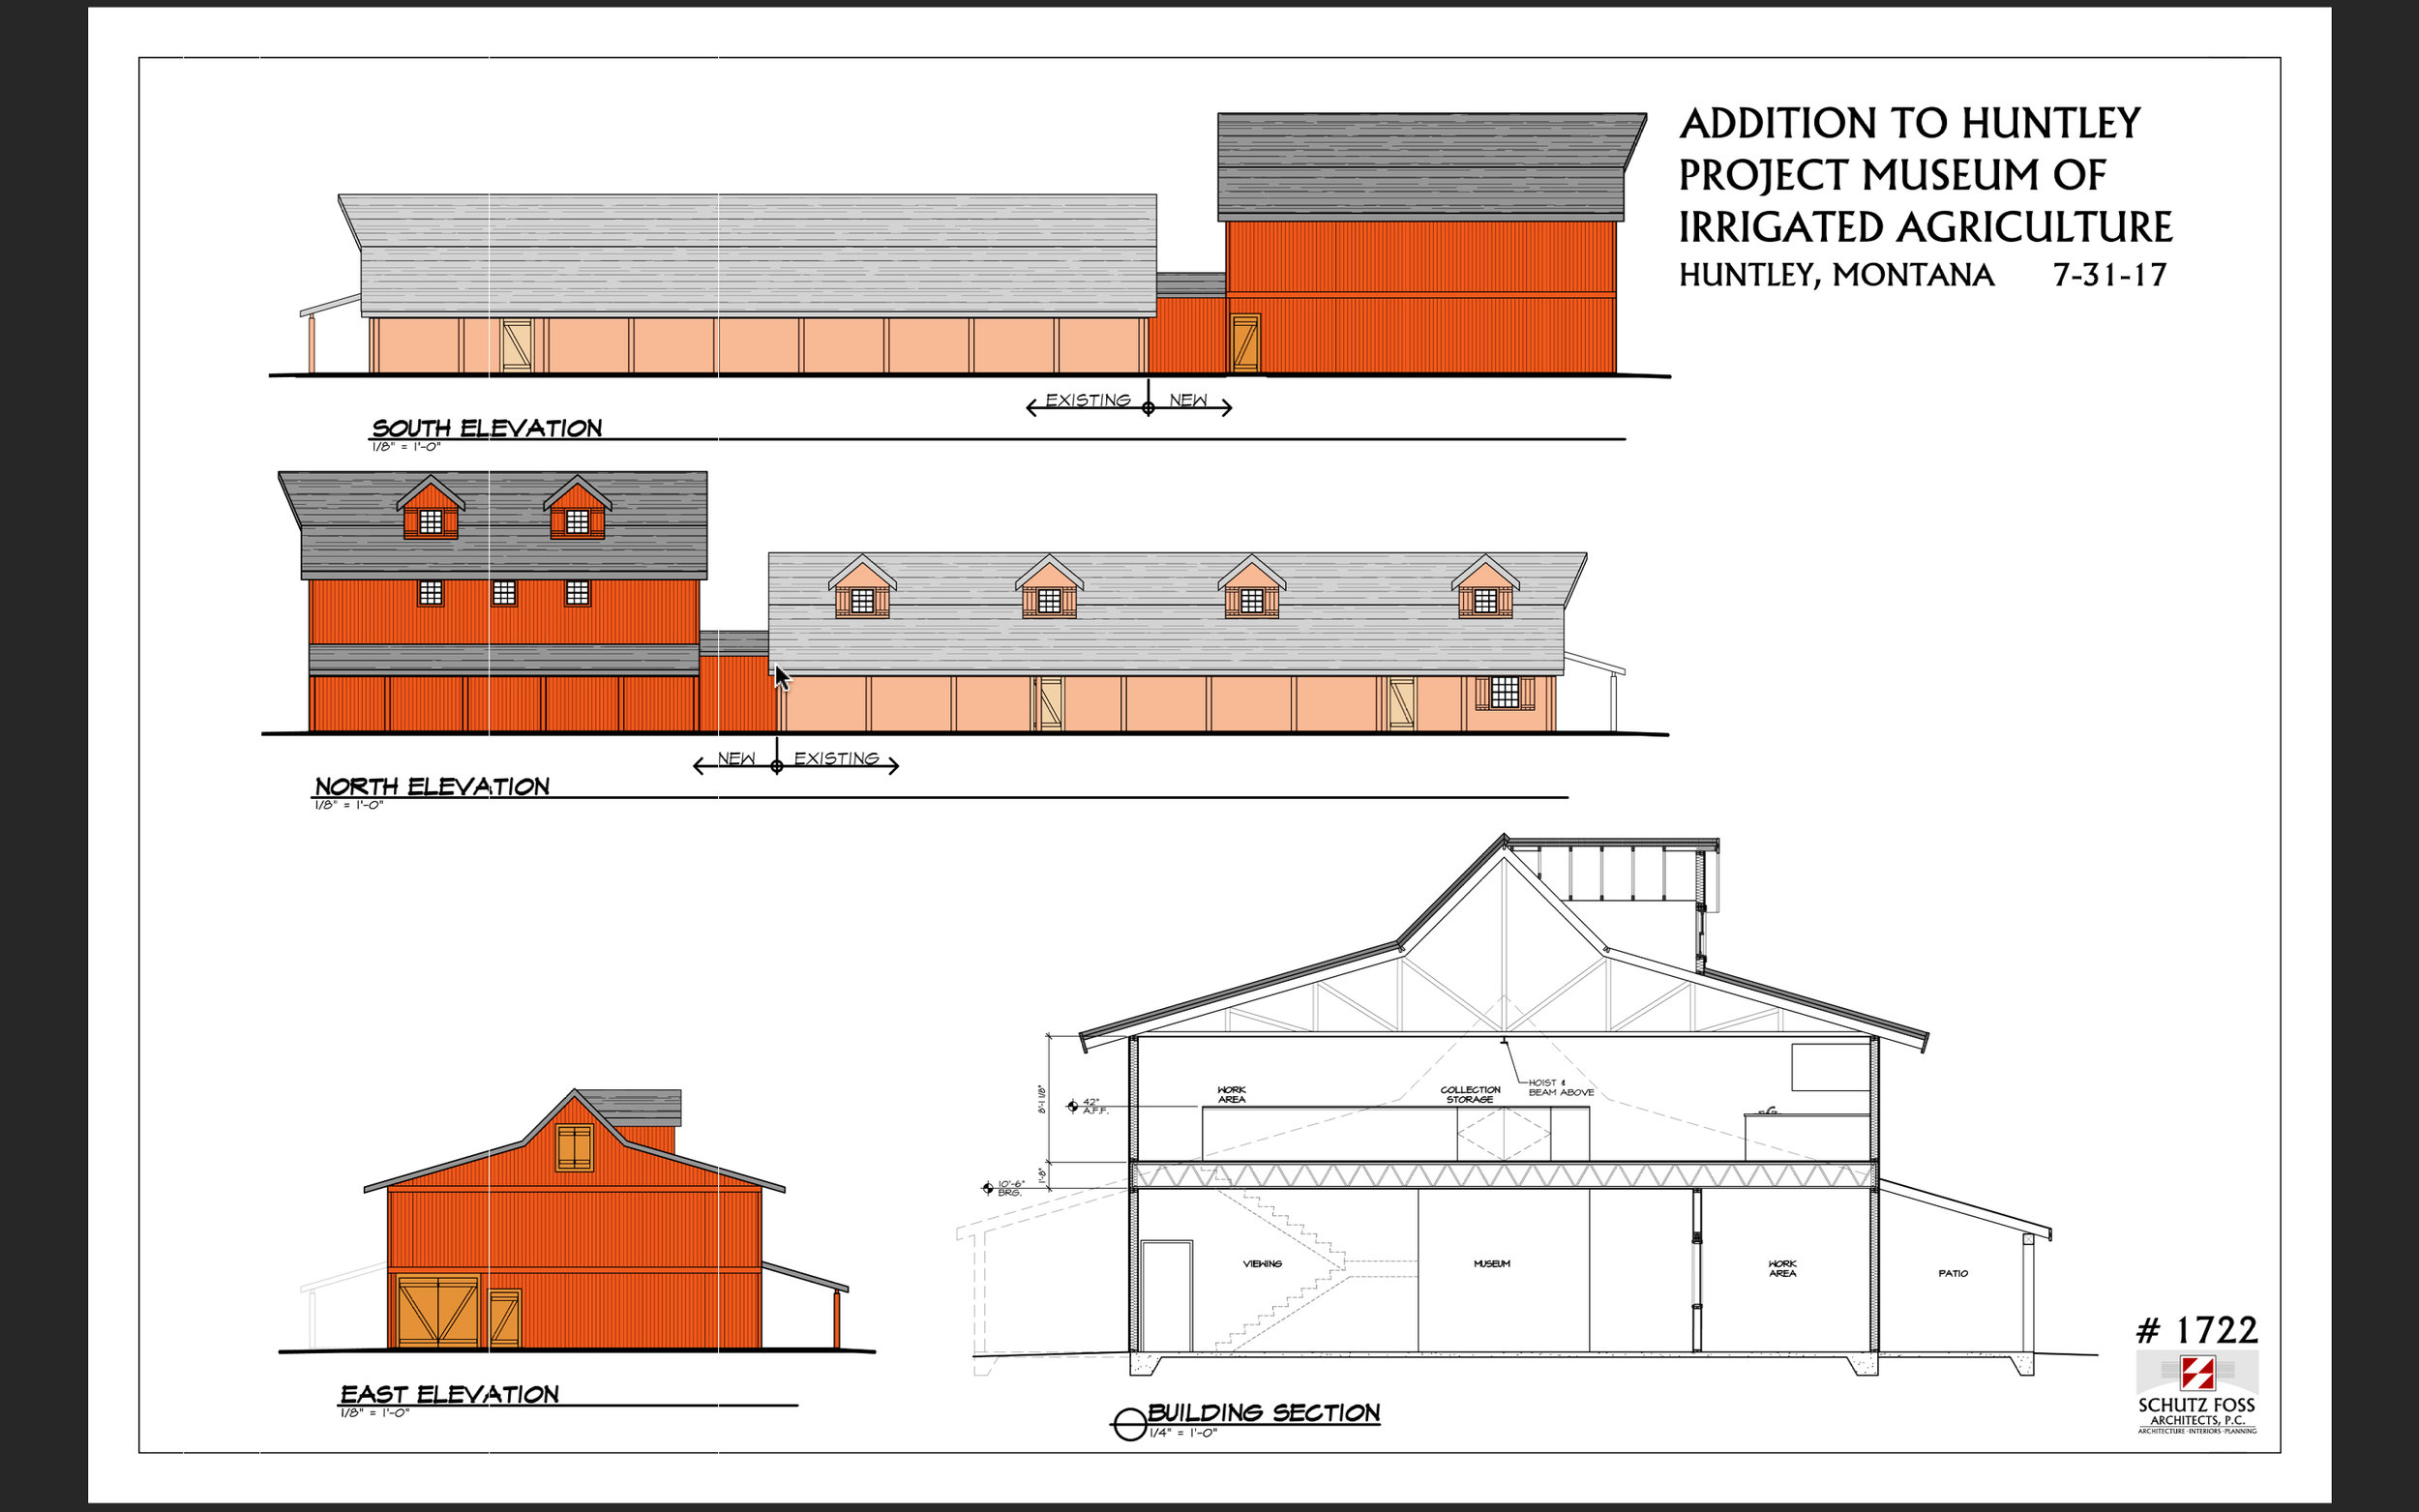 Architectural rendering of the two-story building addition shown at the east end of our current museum building.